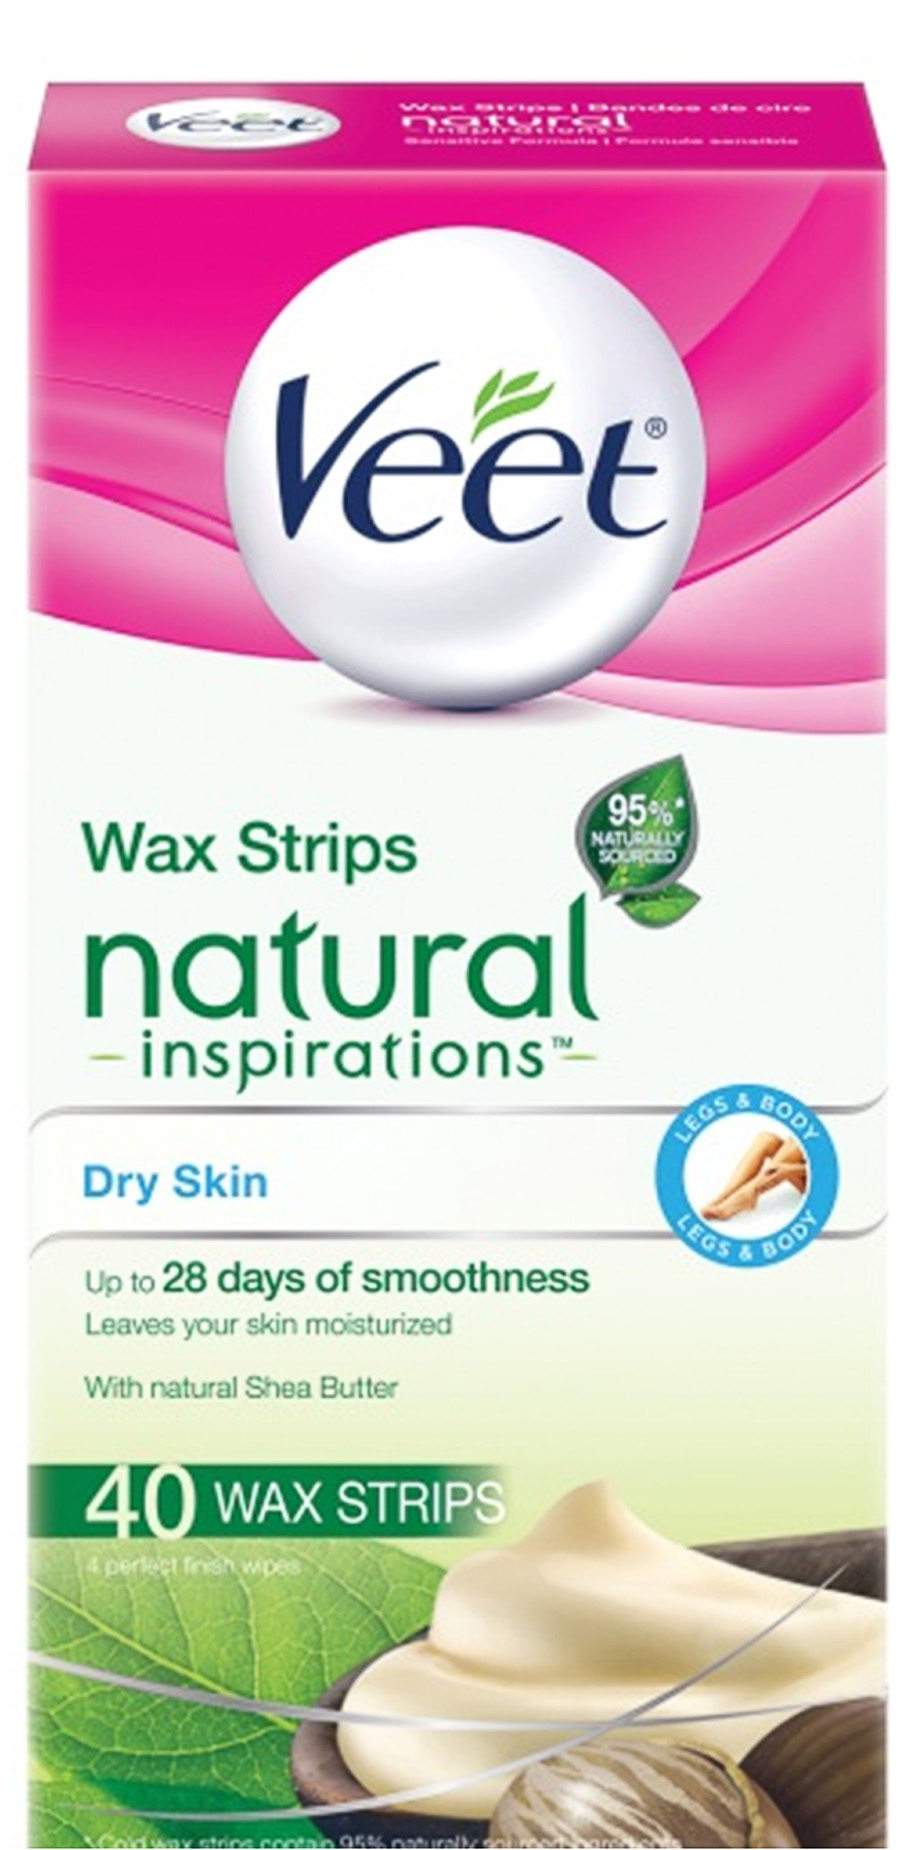 VEET® Natural Inspirations™ Wax Strips - Dry Skin (Wipes)